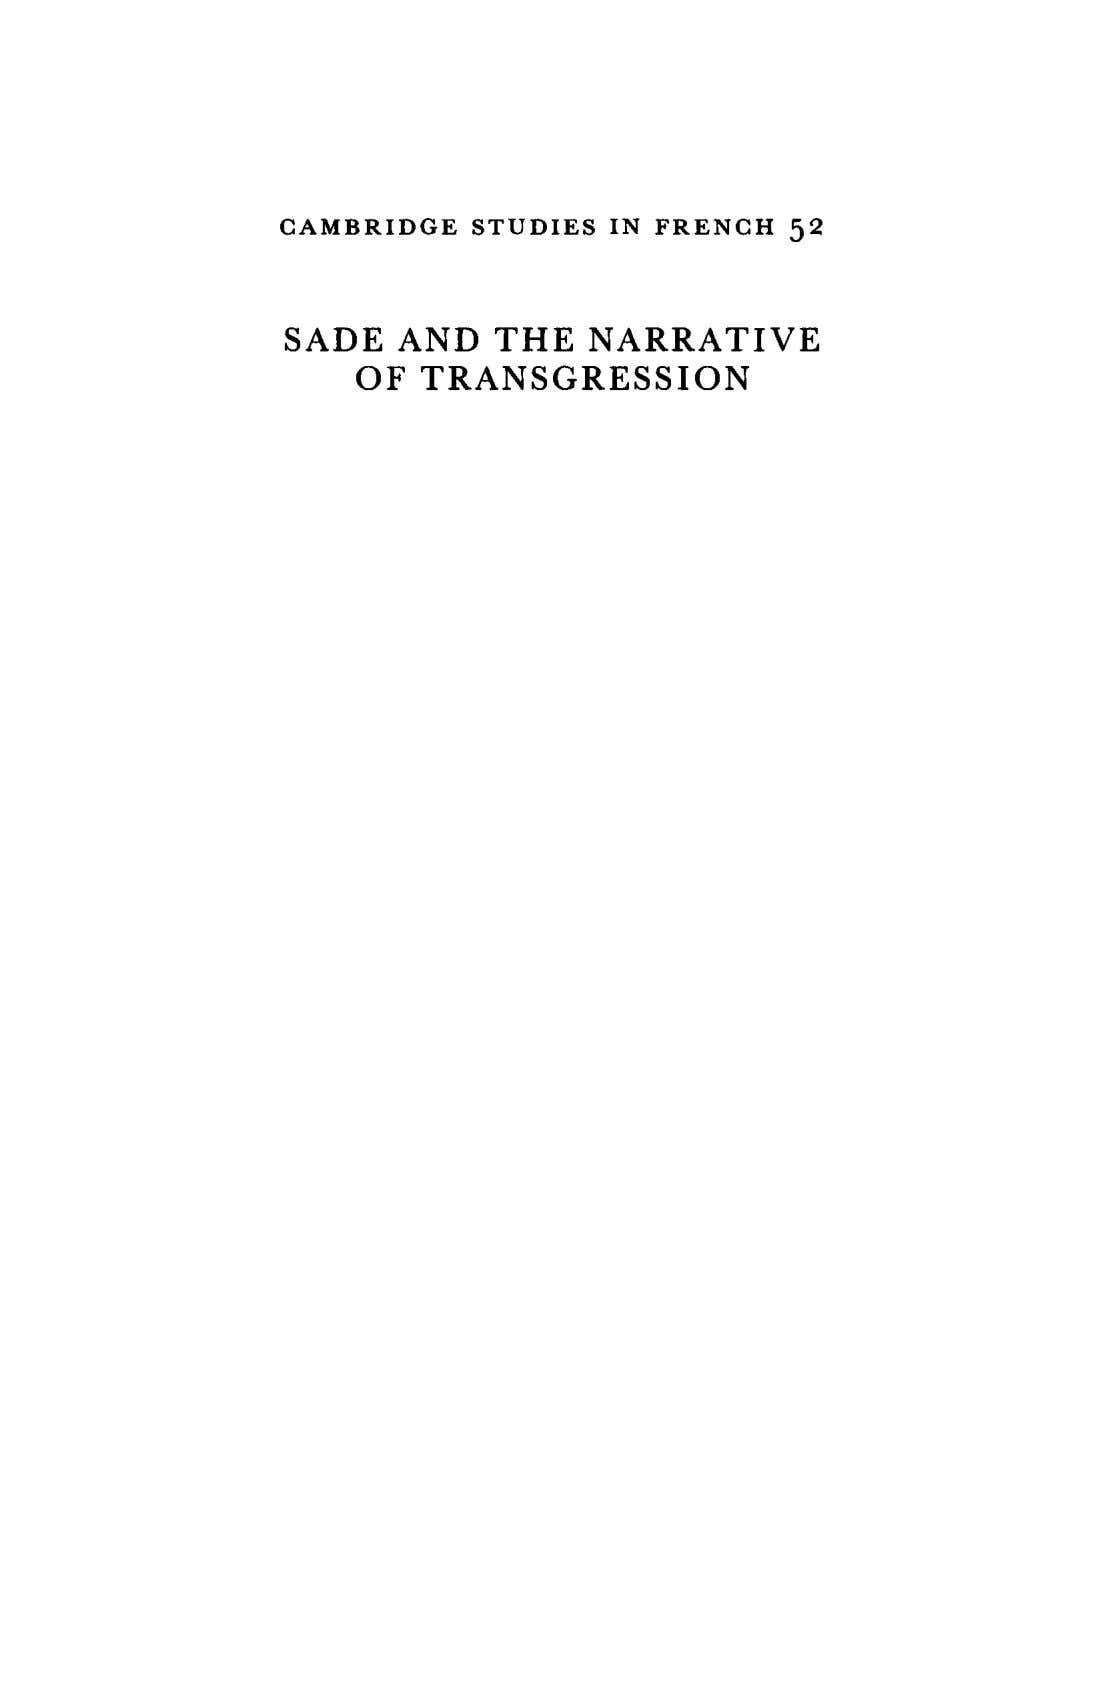 CAMBRIDGE STUDIES IN FRENCH 5 2 SADE AND THE NARRATIVE OF TRANSGRESSION